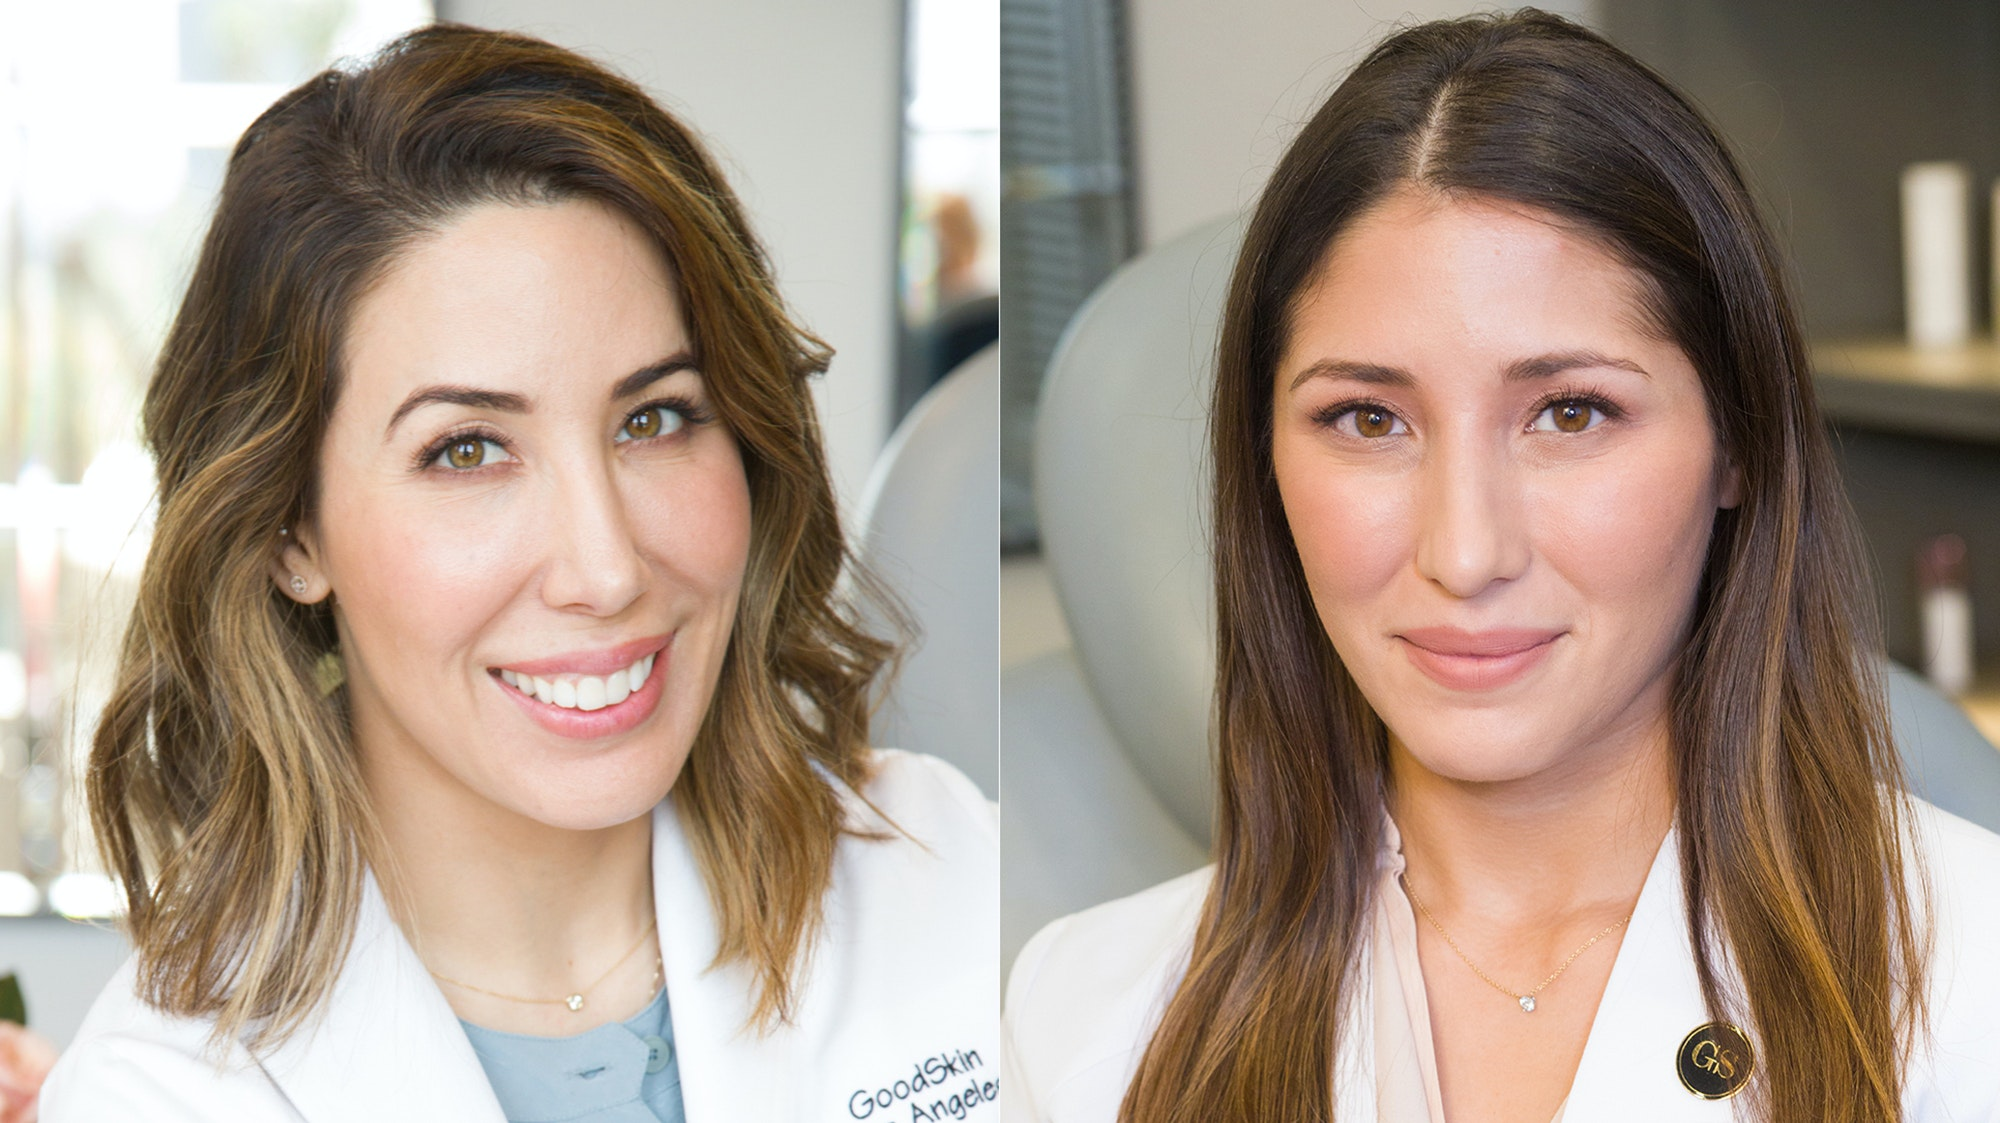 The Sisters Behind Los Angeles's GoodSkin Clinic Share the Secrets to Their Good Skin